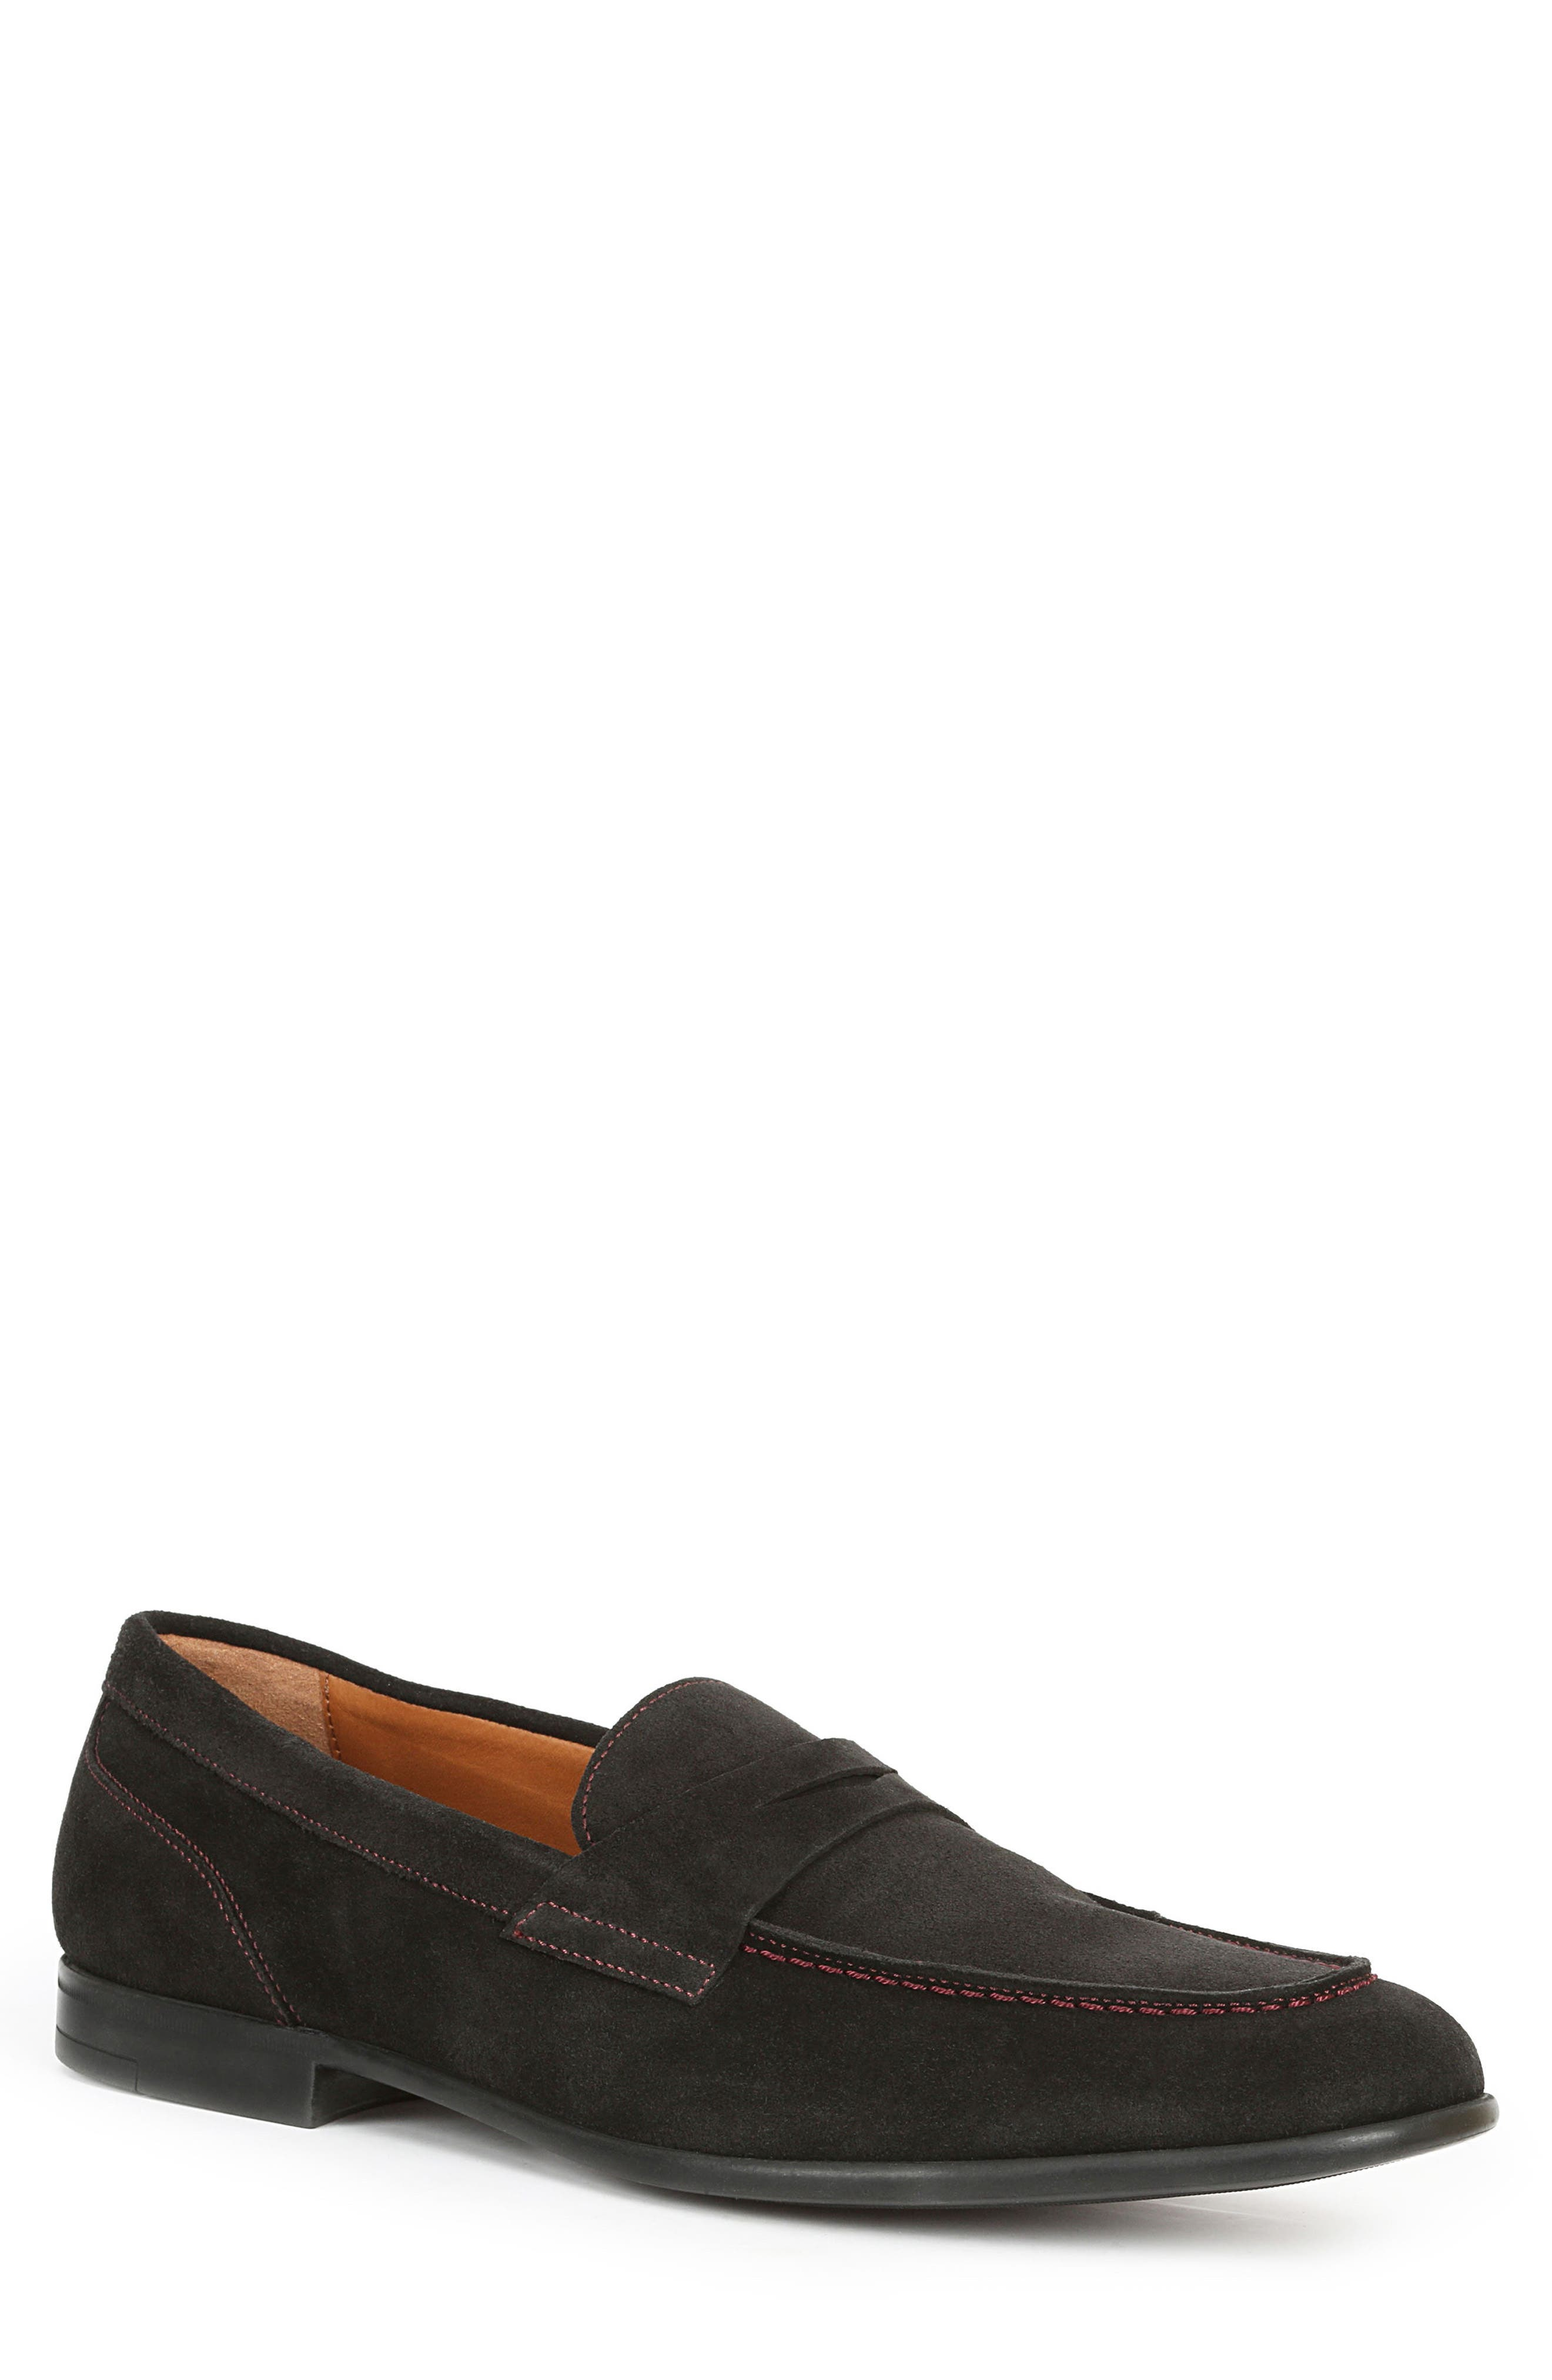 Silas Penny Loafer,                         Main,                         color, BLACK